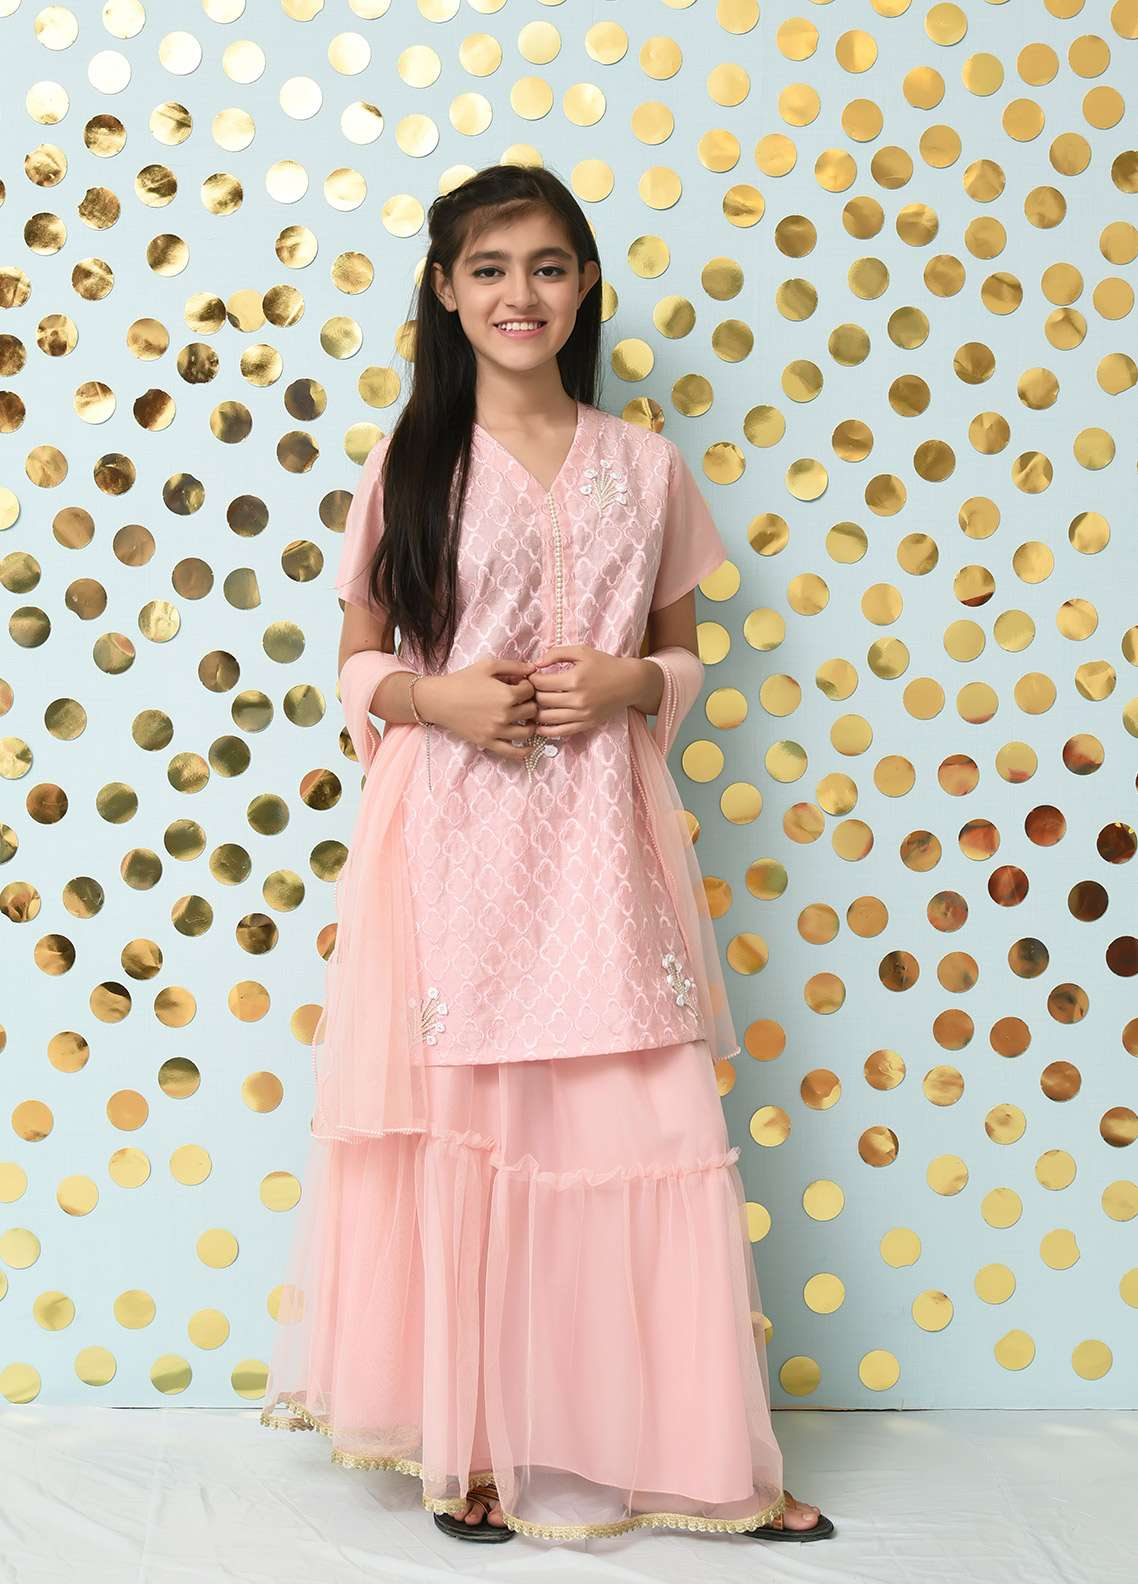 Ochre Chiffon Formal Girls 3 Piece Suit - OFW 161 Pink